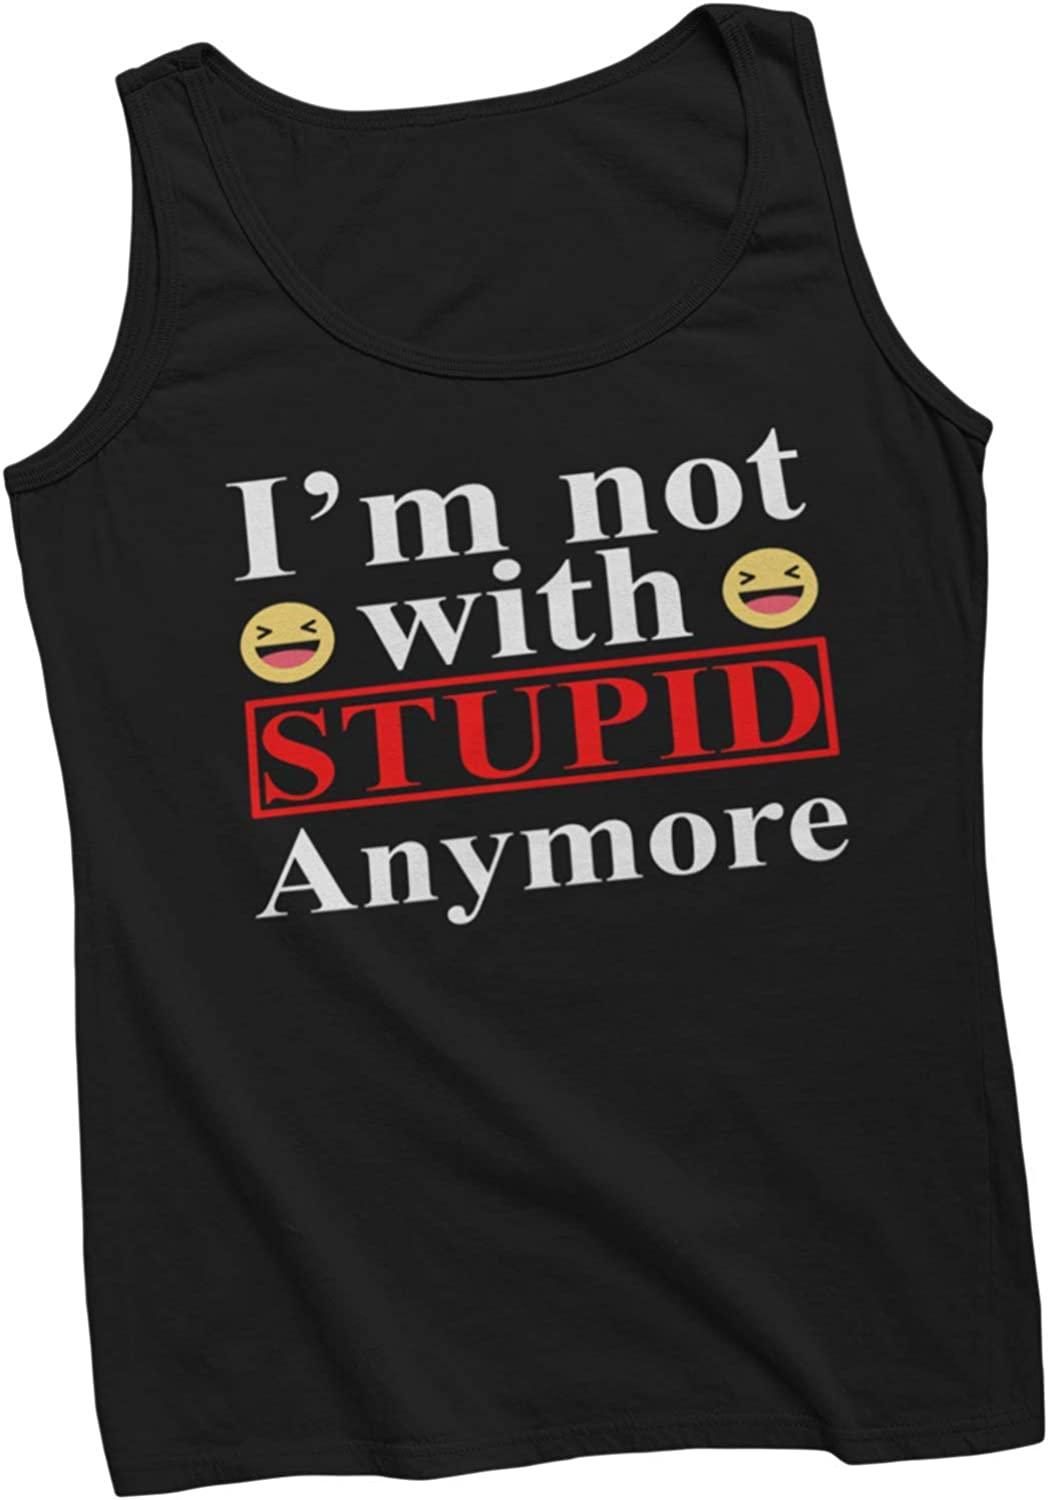 I'm Not with Stupid Anymore Funny Novelty Humor Tank Top Tee T-Shirt